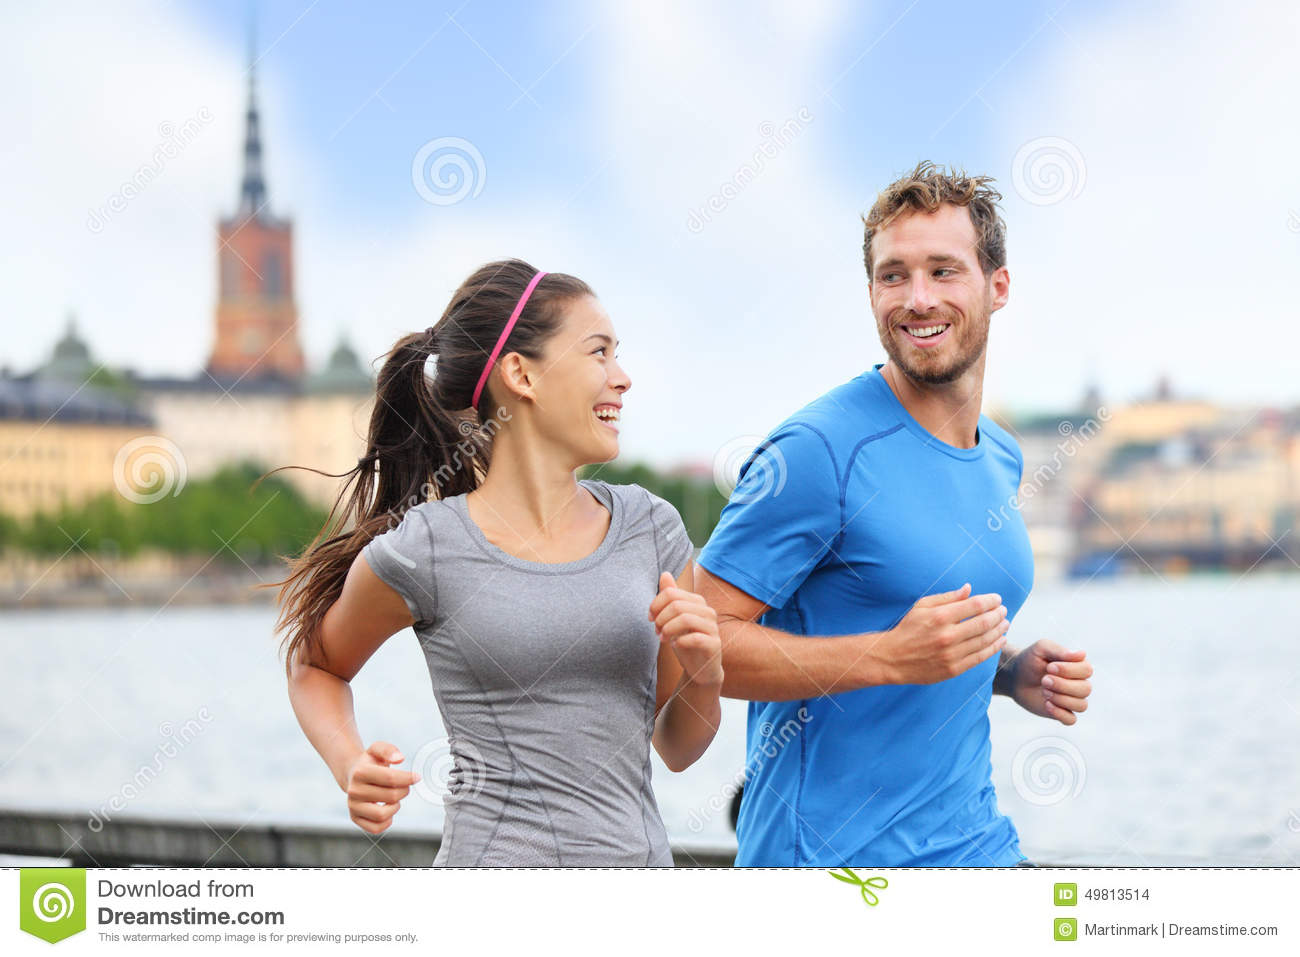 Couple runners running in Stockholm city, Sweden